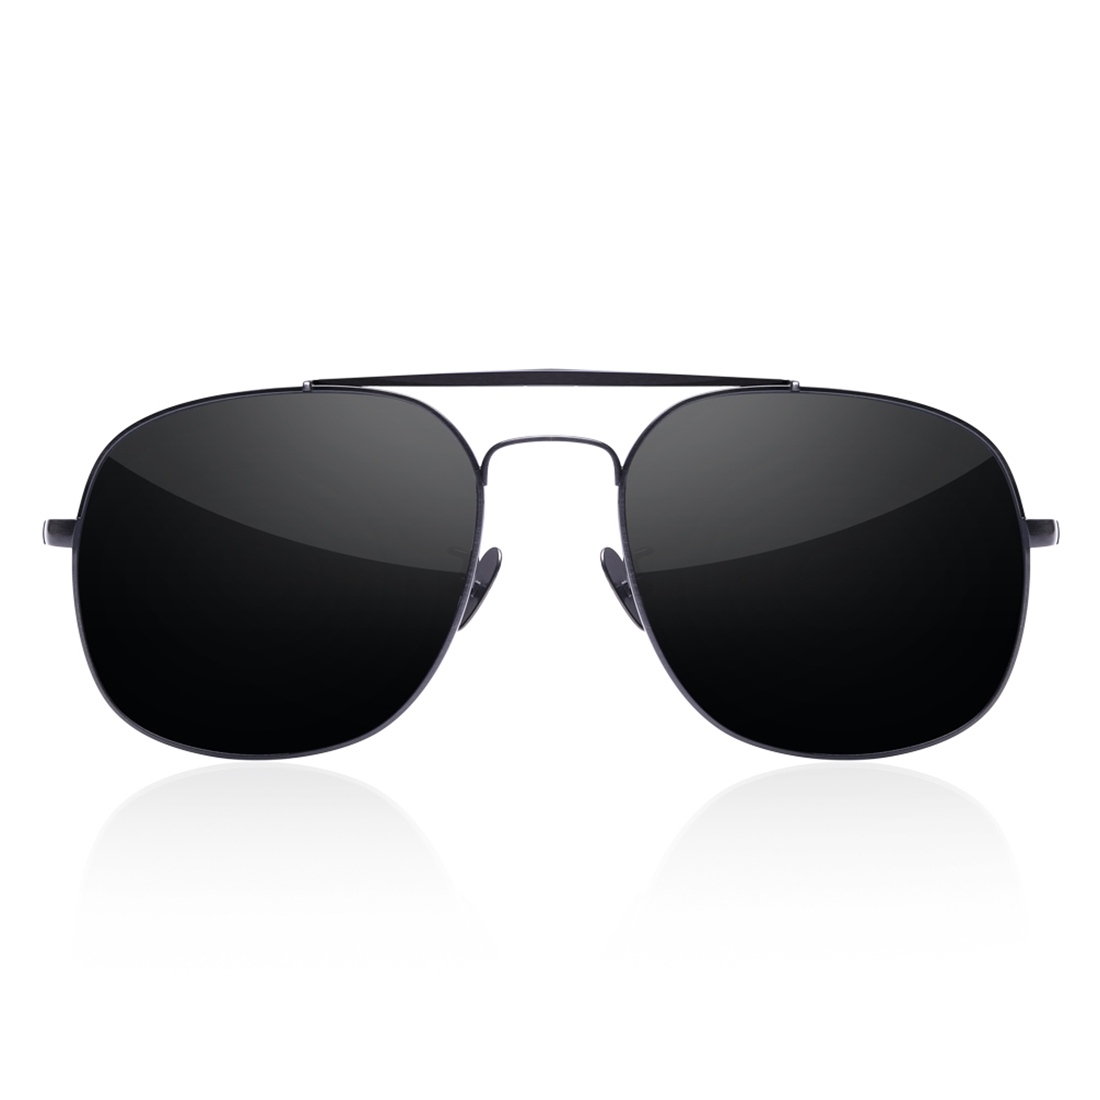 49b78e1523f Original Xiaomi TS Double Beam Sunglasses Pilots Glasses (Black) ·  OG0636B 2. ...